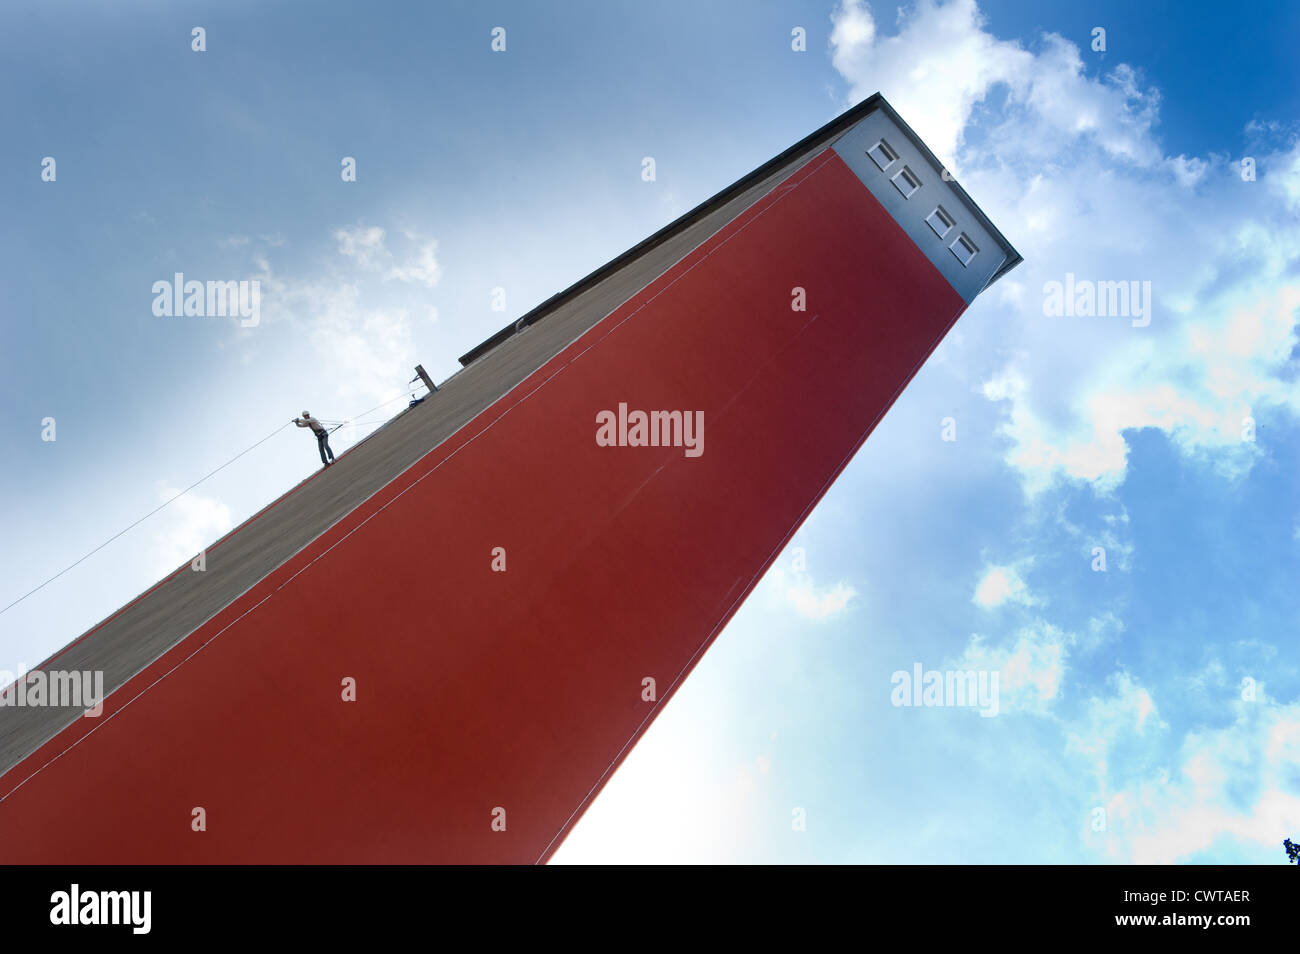 Person climbing at fade of a high-rise building - Stock Image